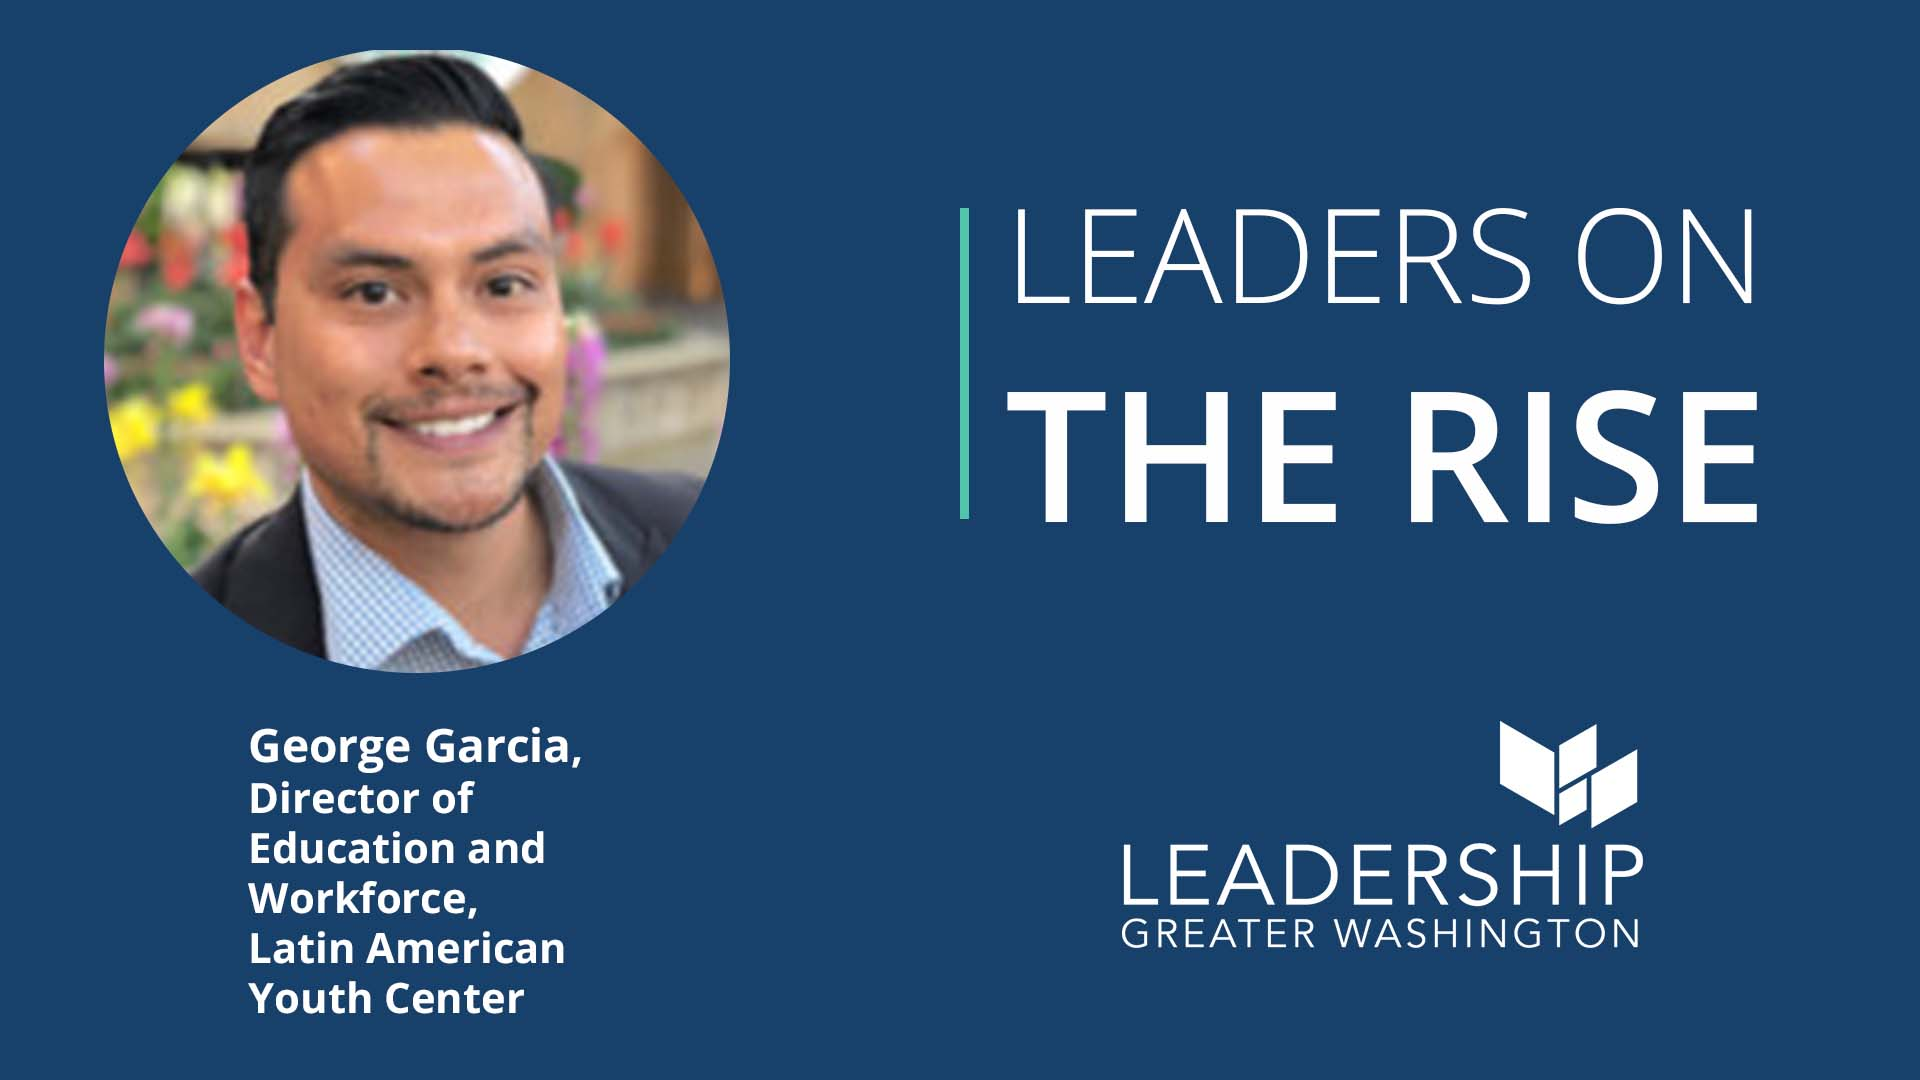 Leaders on the Rise - George Garcia, Latin American Youth Center